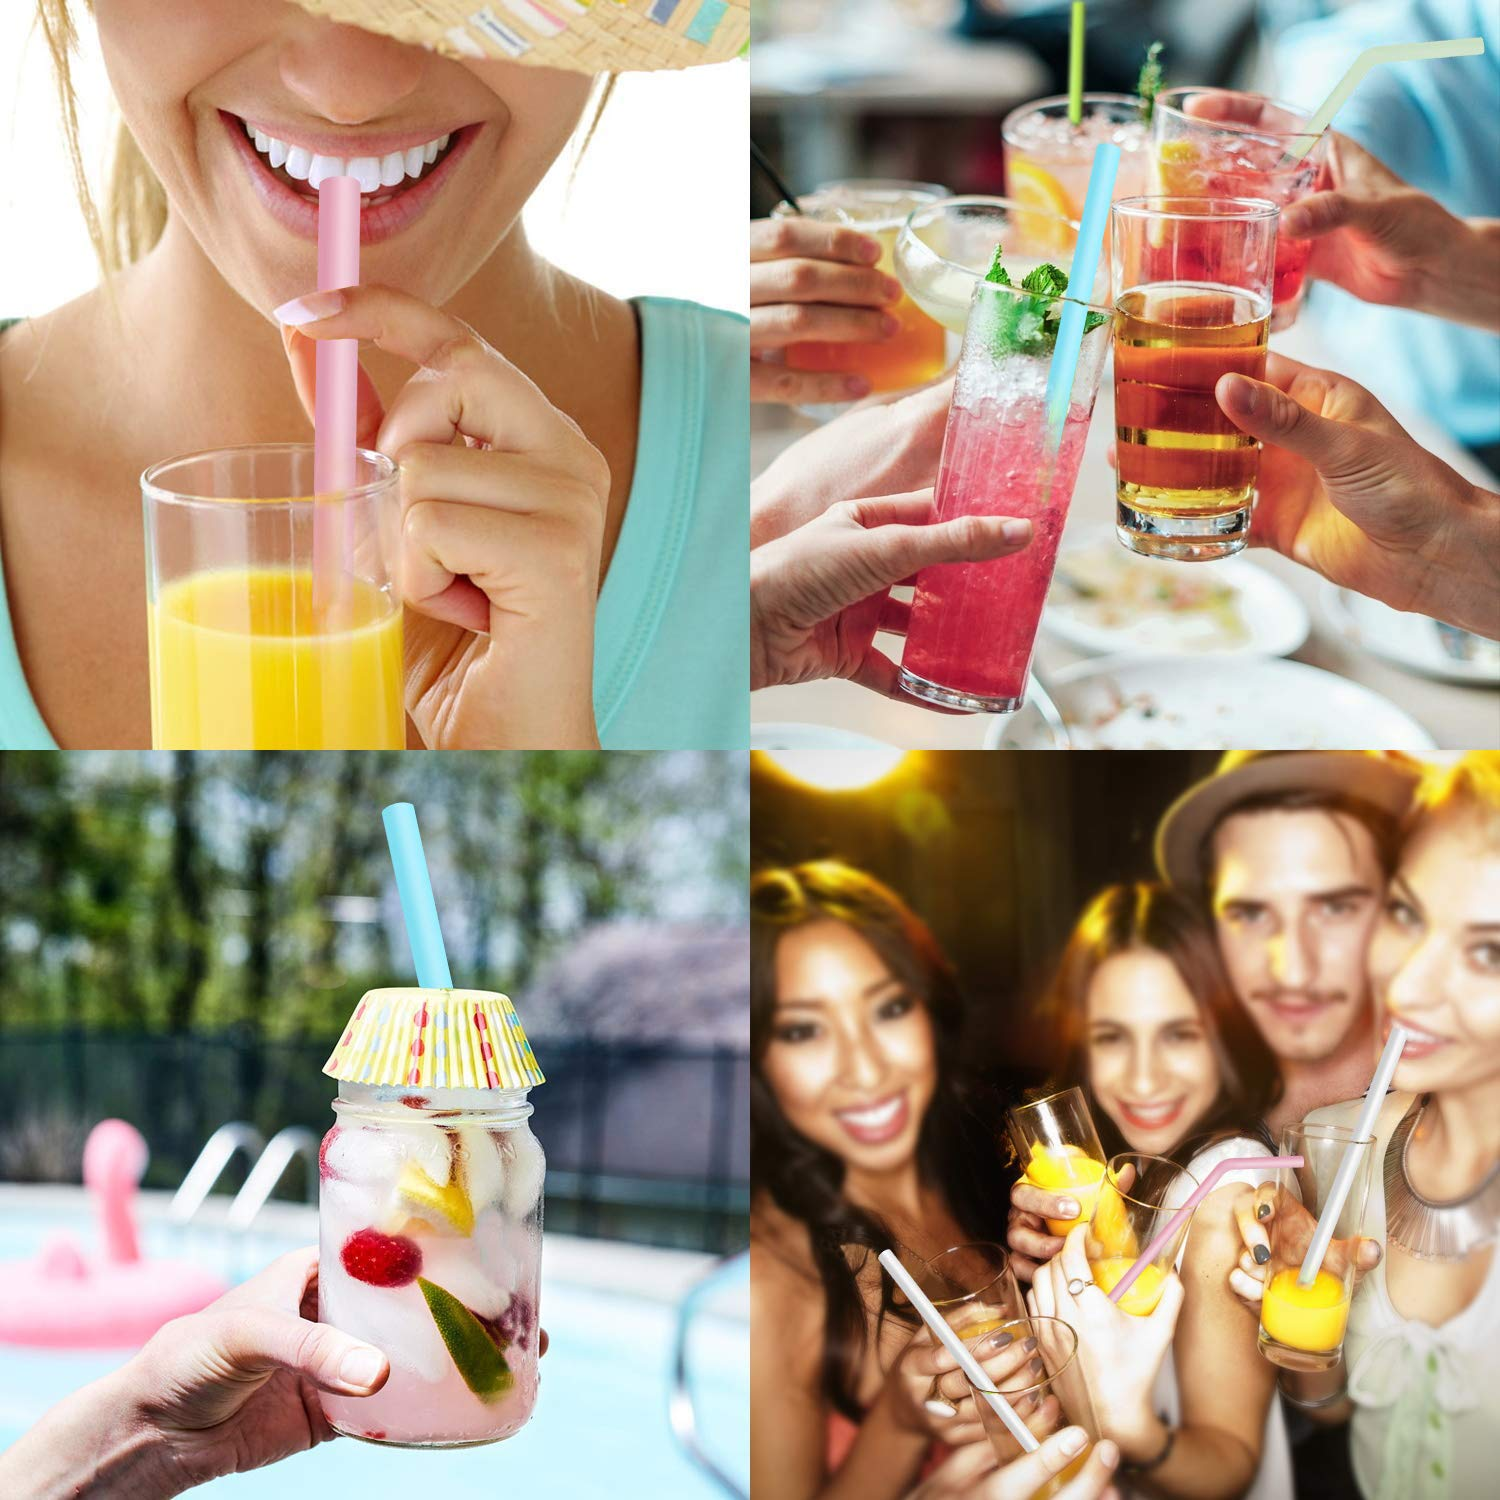 PHYLES Reusable Silicone Straws, 8 Pack Colourful Reusable Drinking Straws, Eco Friendly Alternative to Plastic, BPA Free, Dishwasher Safe, with 2 Cleaning Brushes